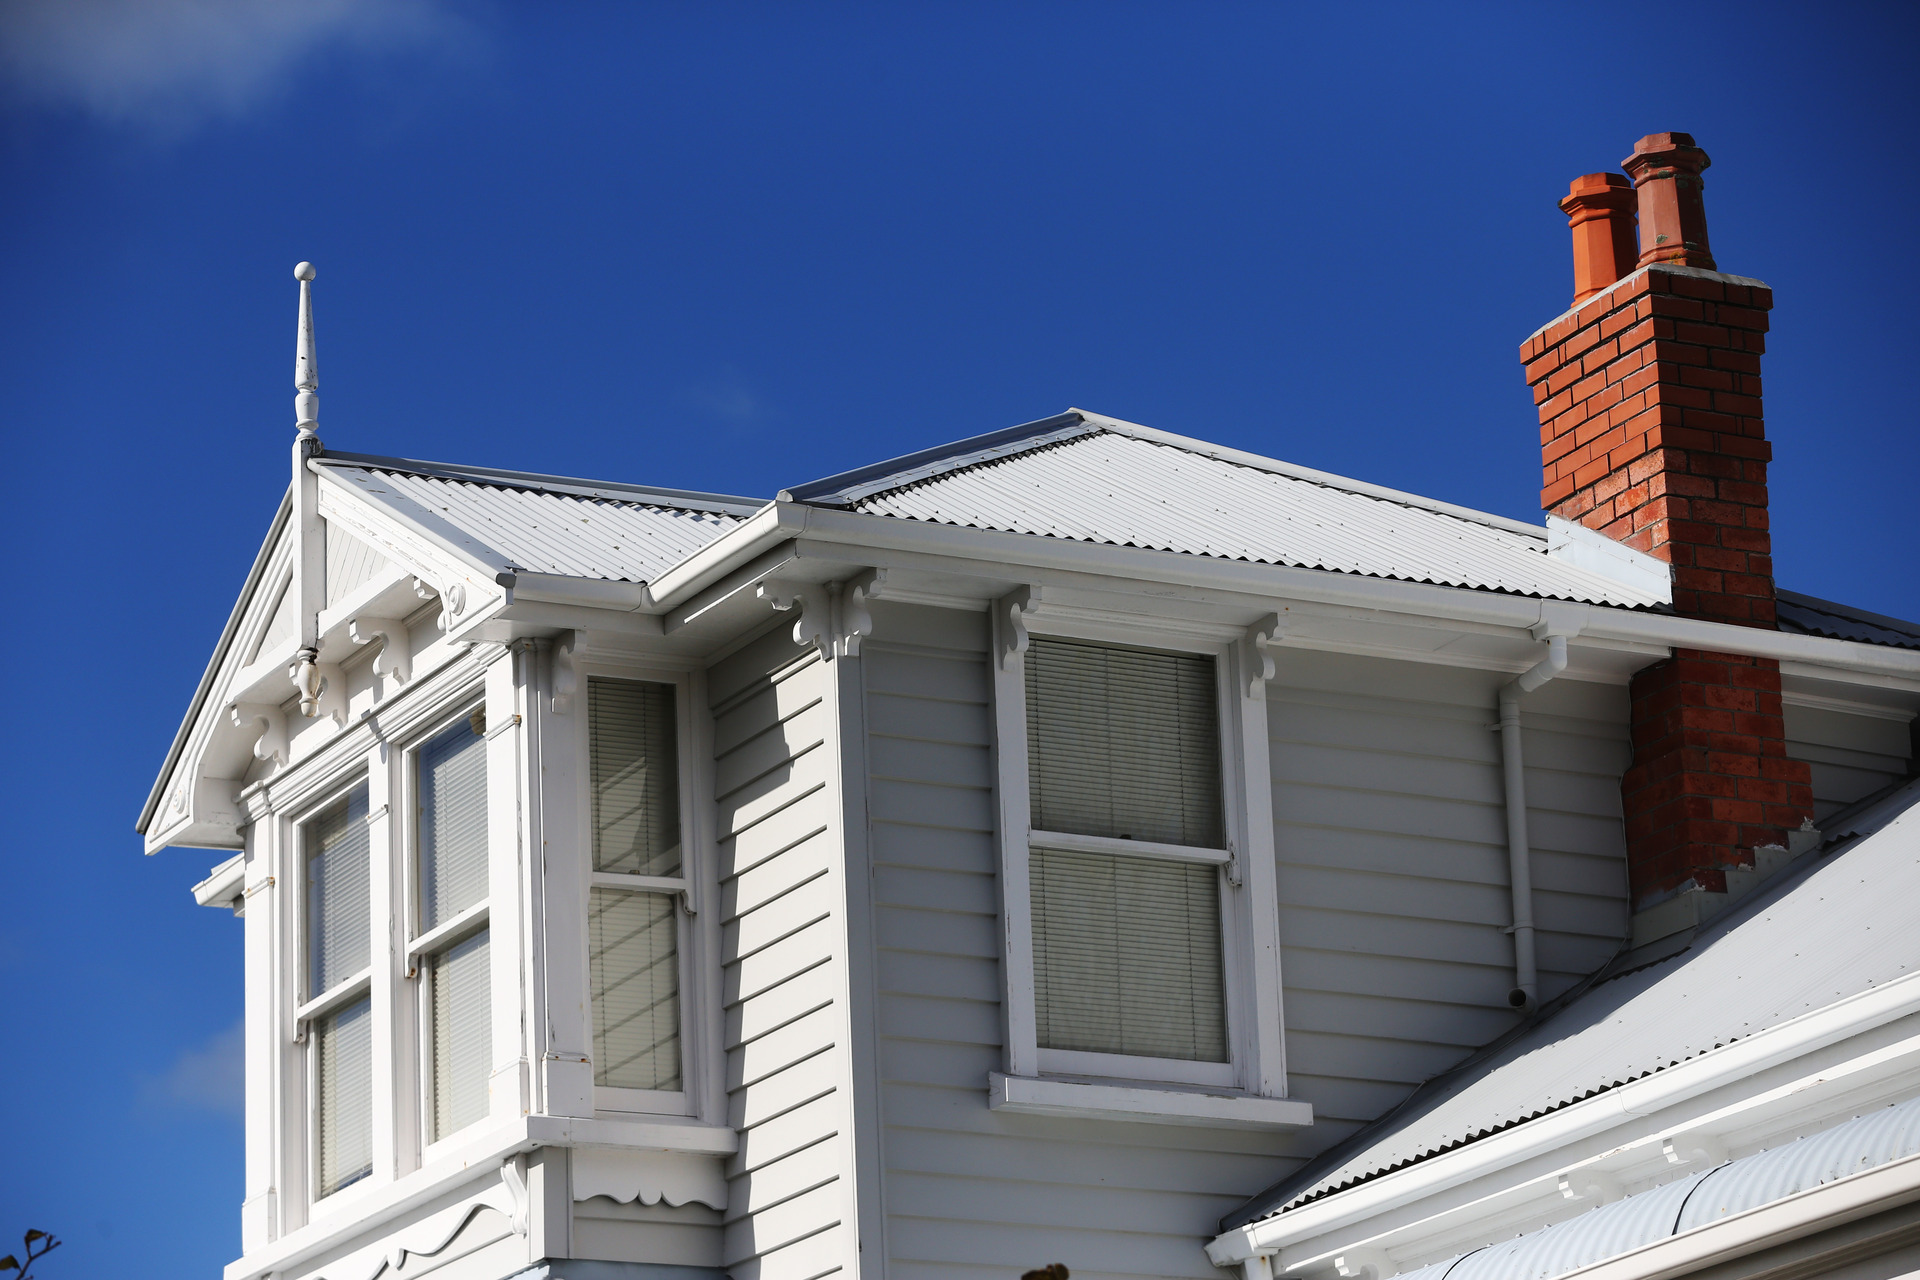 NZ house prices set a new record: Six fastest-rising areas revealed